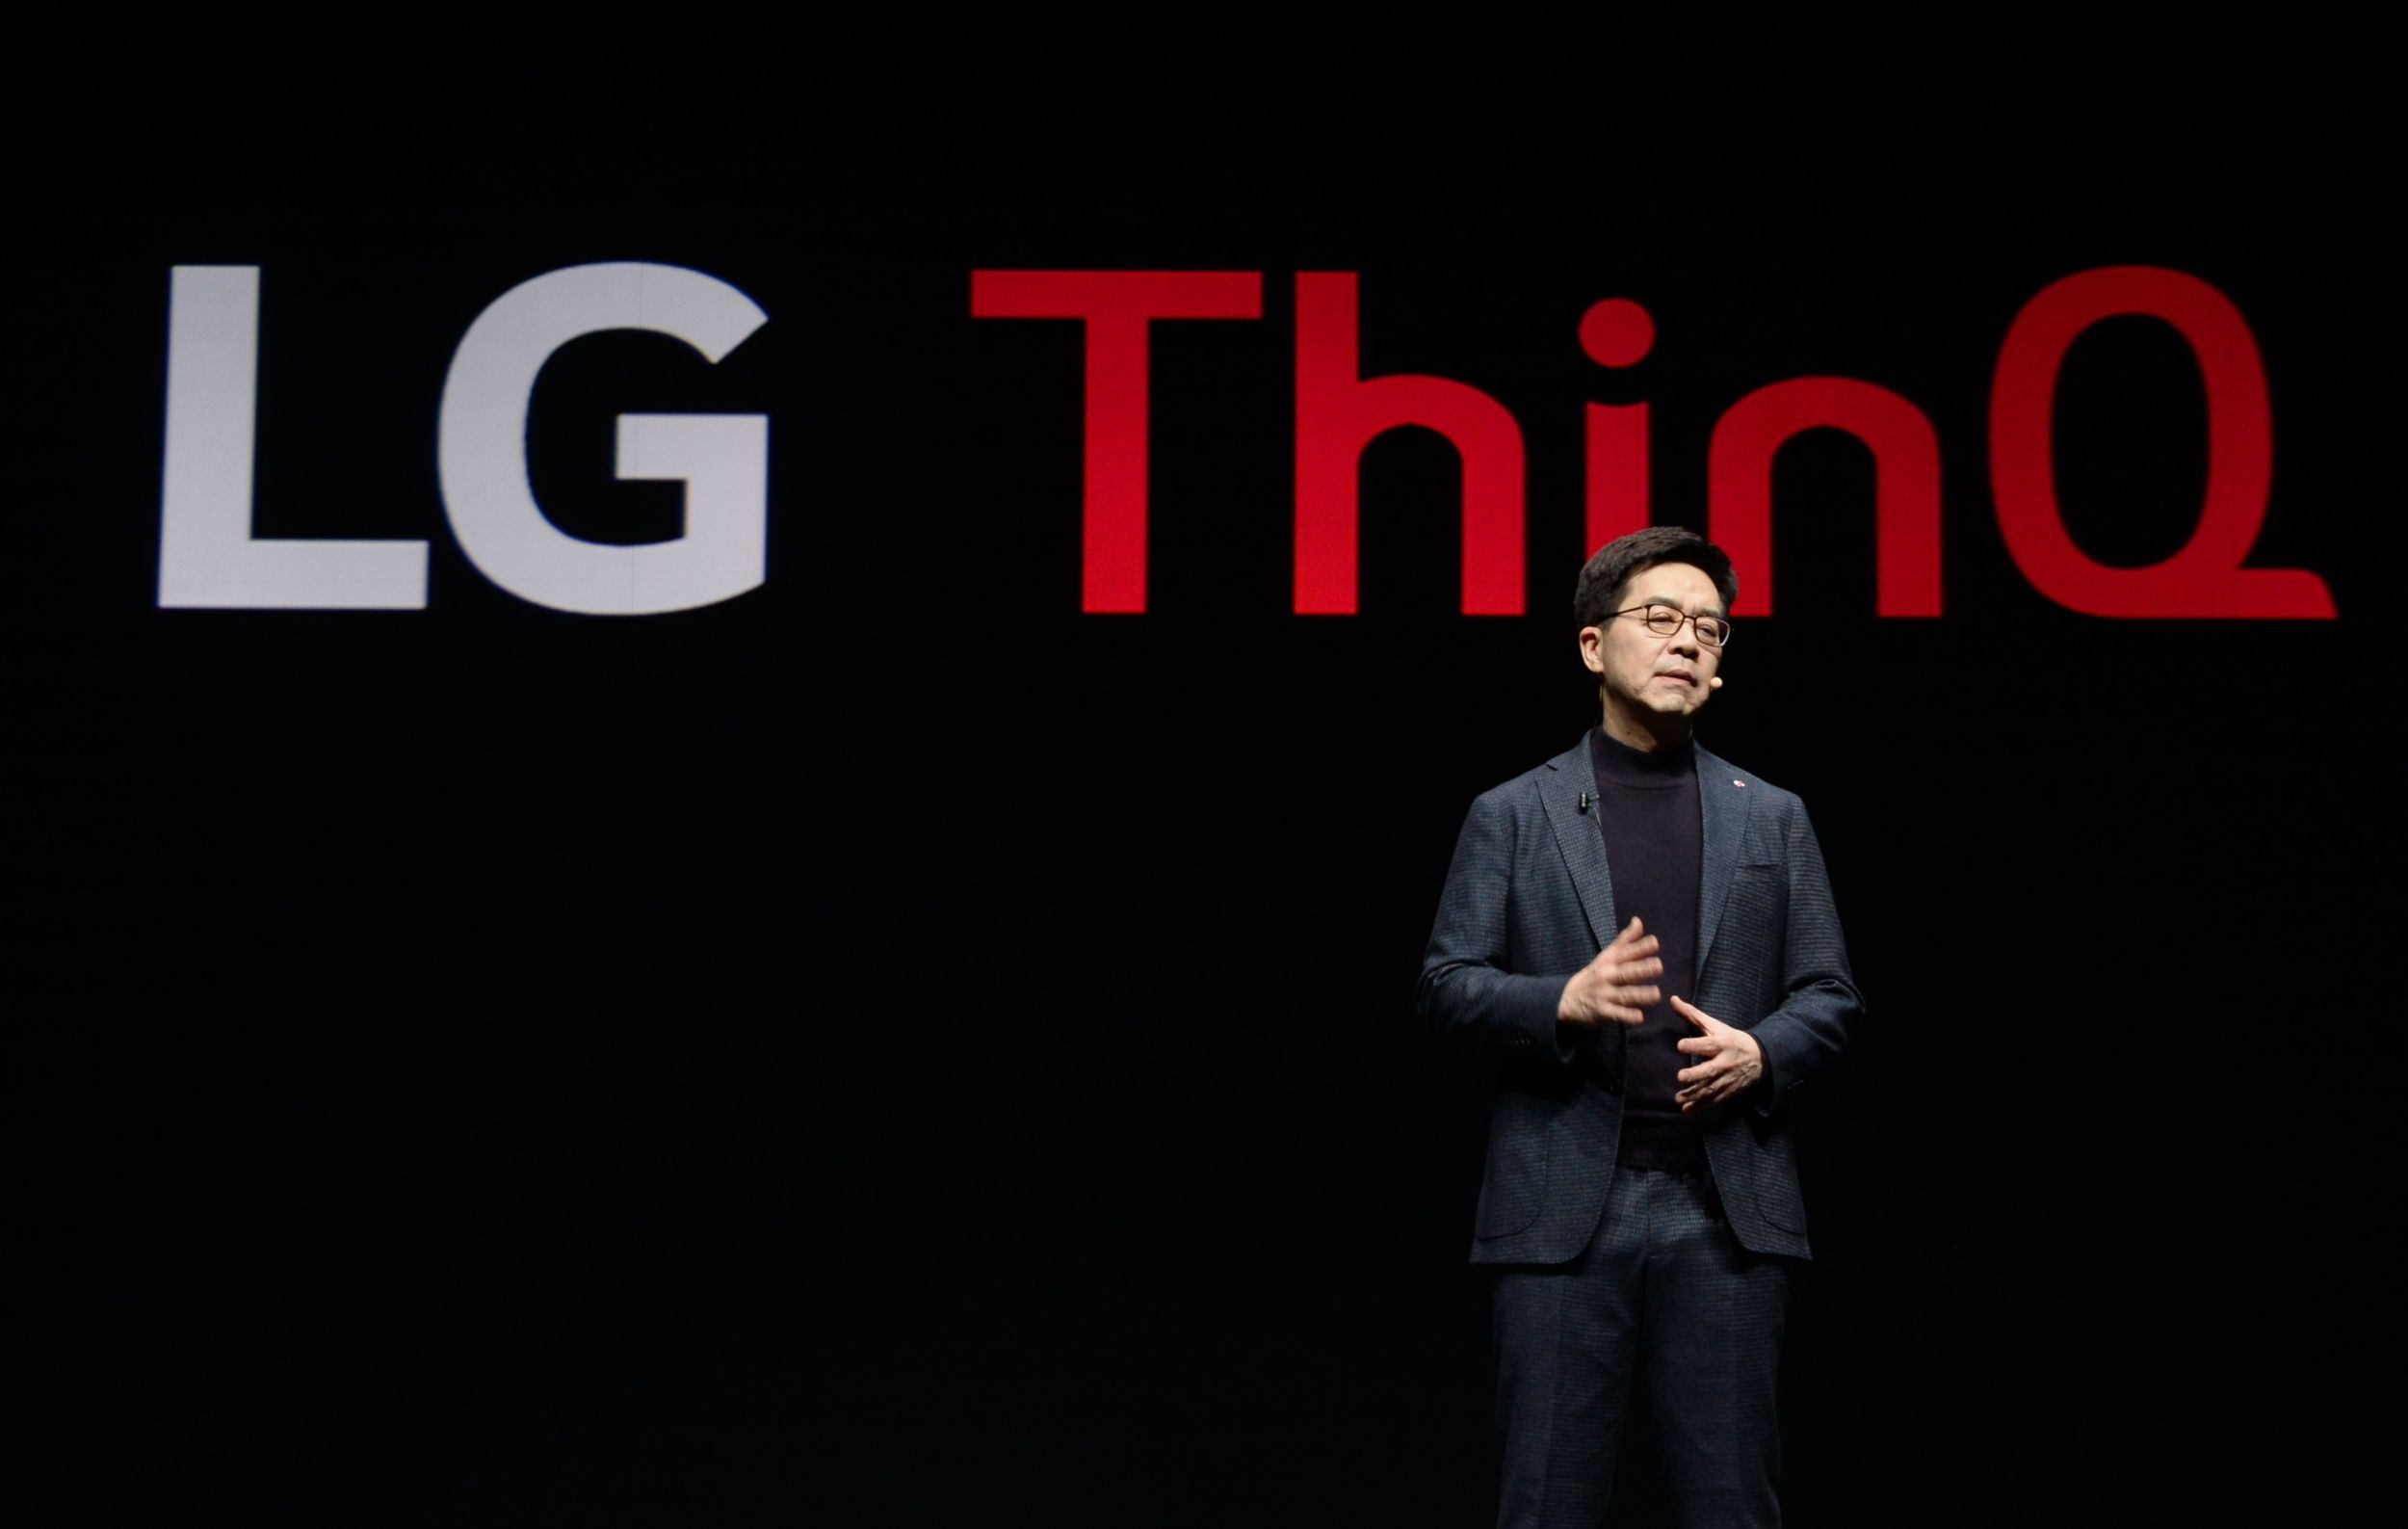 LG Electronics president and chief technology officer, Dr. I.P. Park, addresses the audience in his keynote at CES 2019.